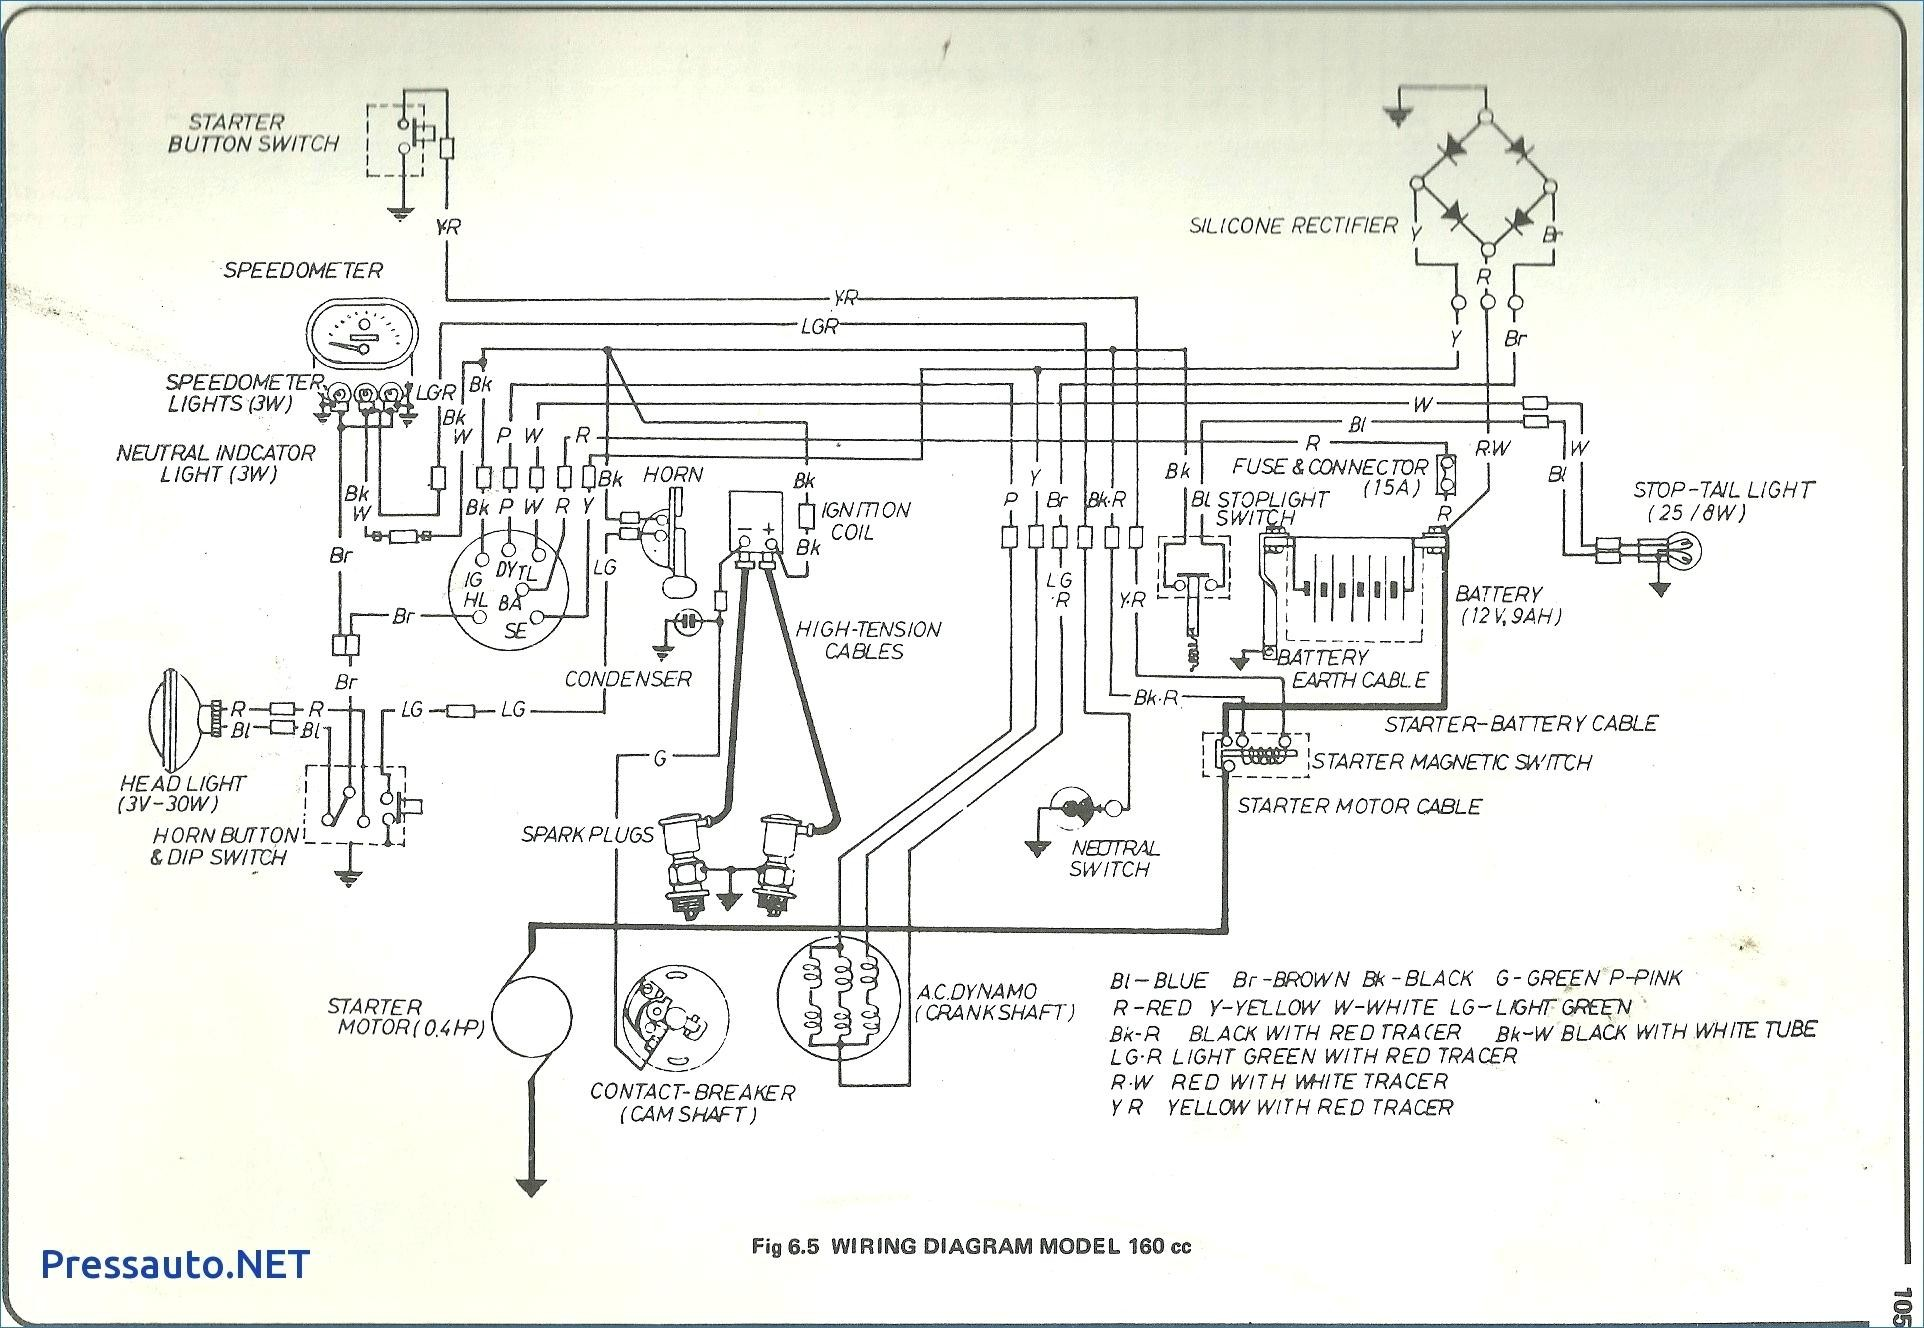 electric heat strip wiring diagram trane xe1000 parts inspirational